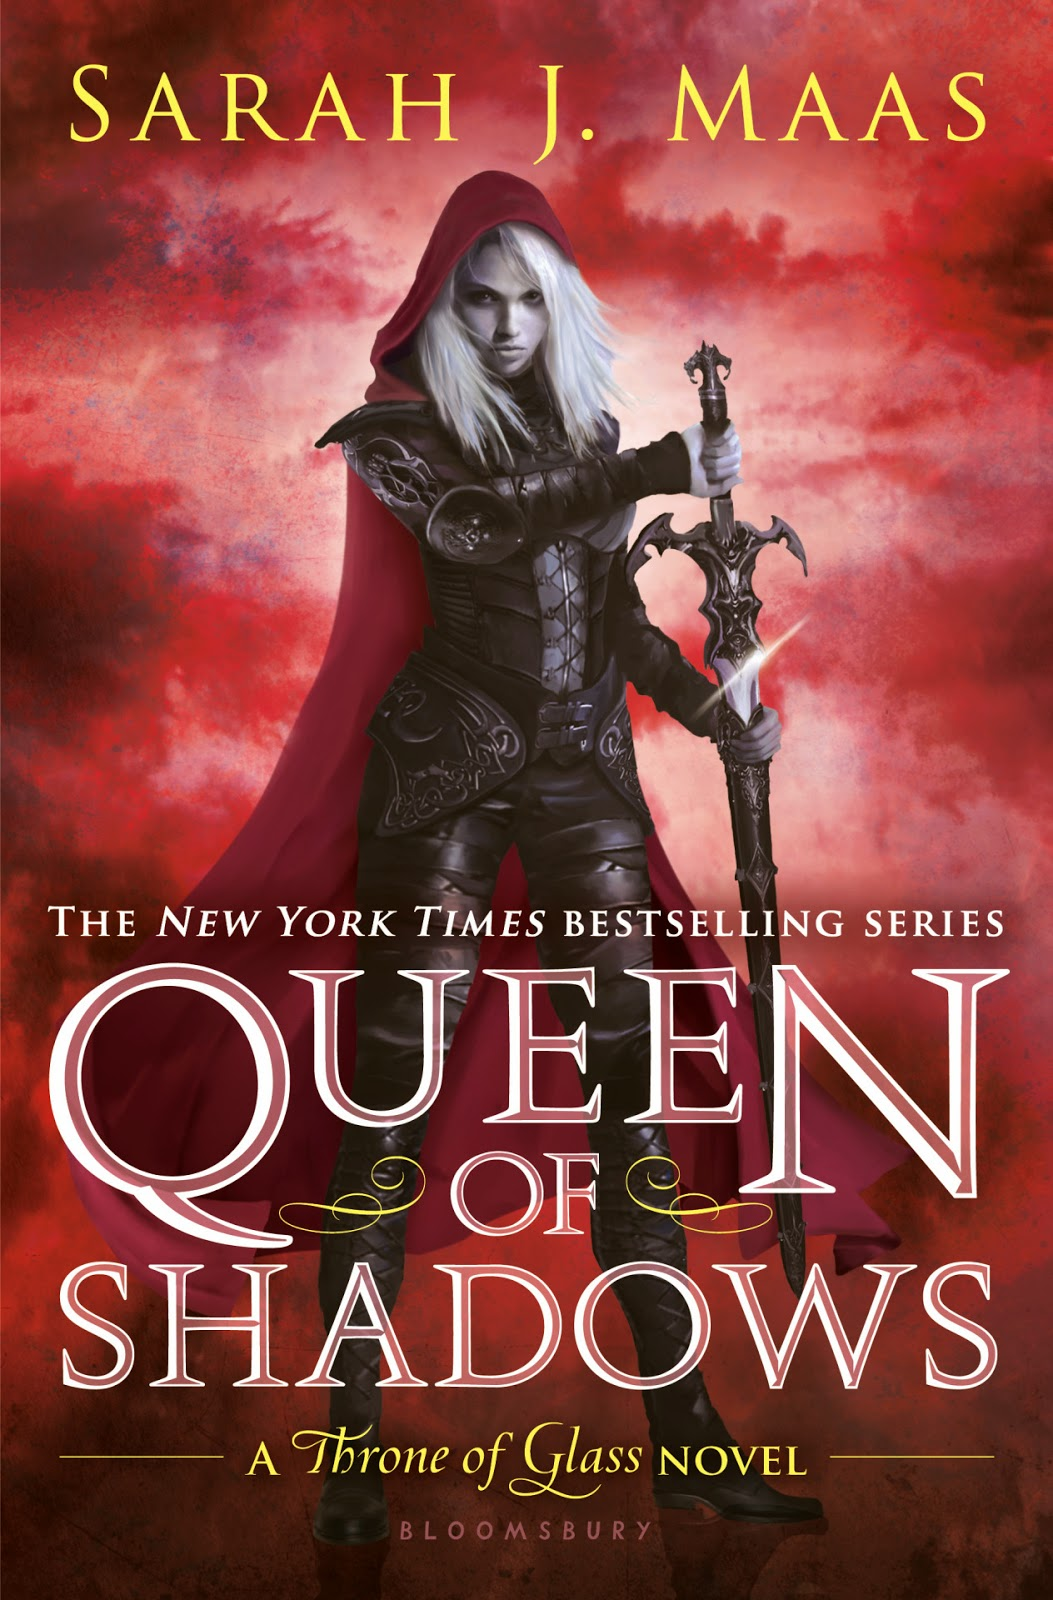 throne of glass book 4 four queen of shadows by sarah j maas cover reveal release large hd high definition resolution quality young adult fantasy united states version u.s.a. u.s. usa us